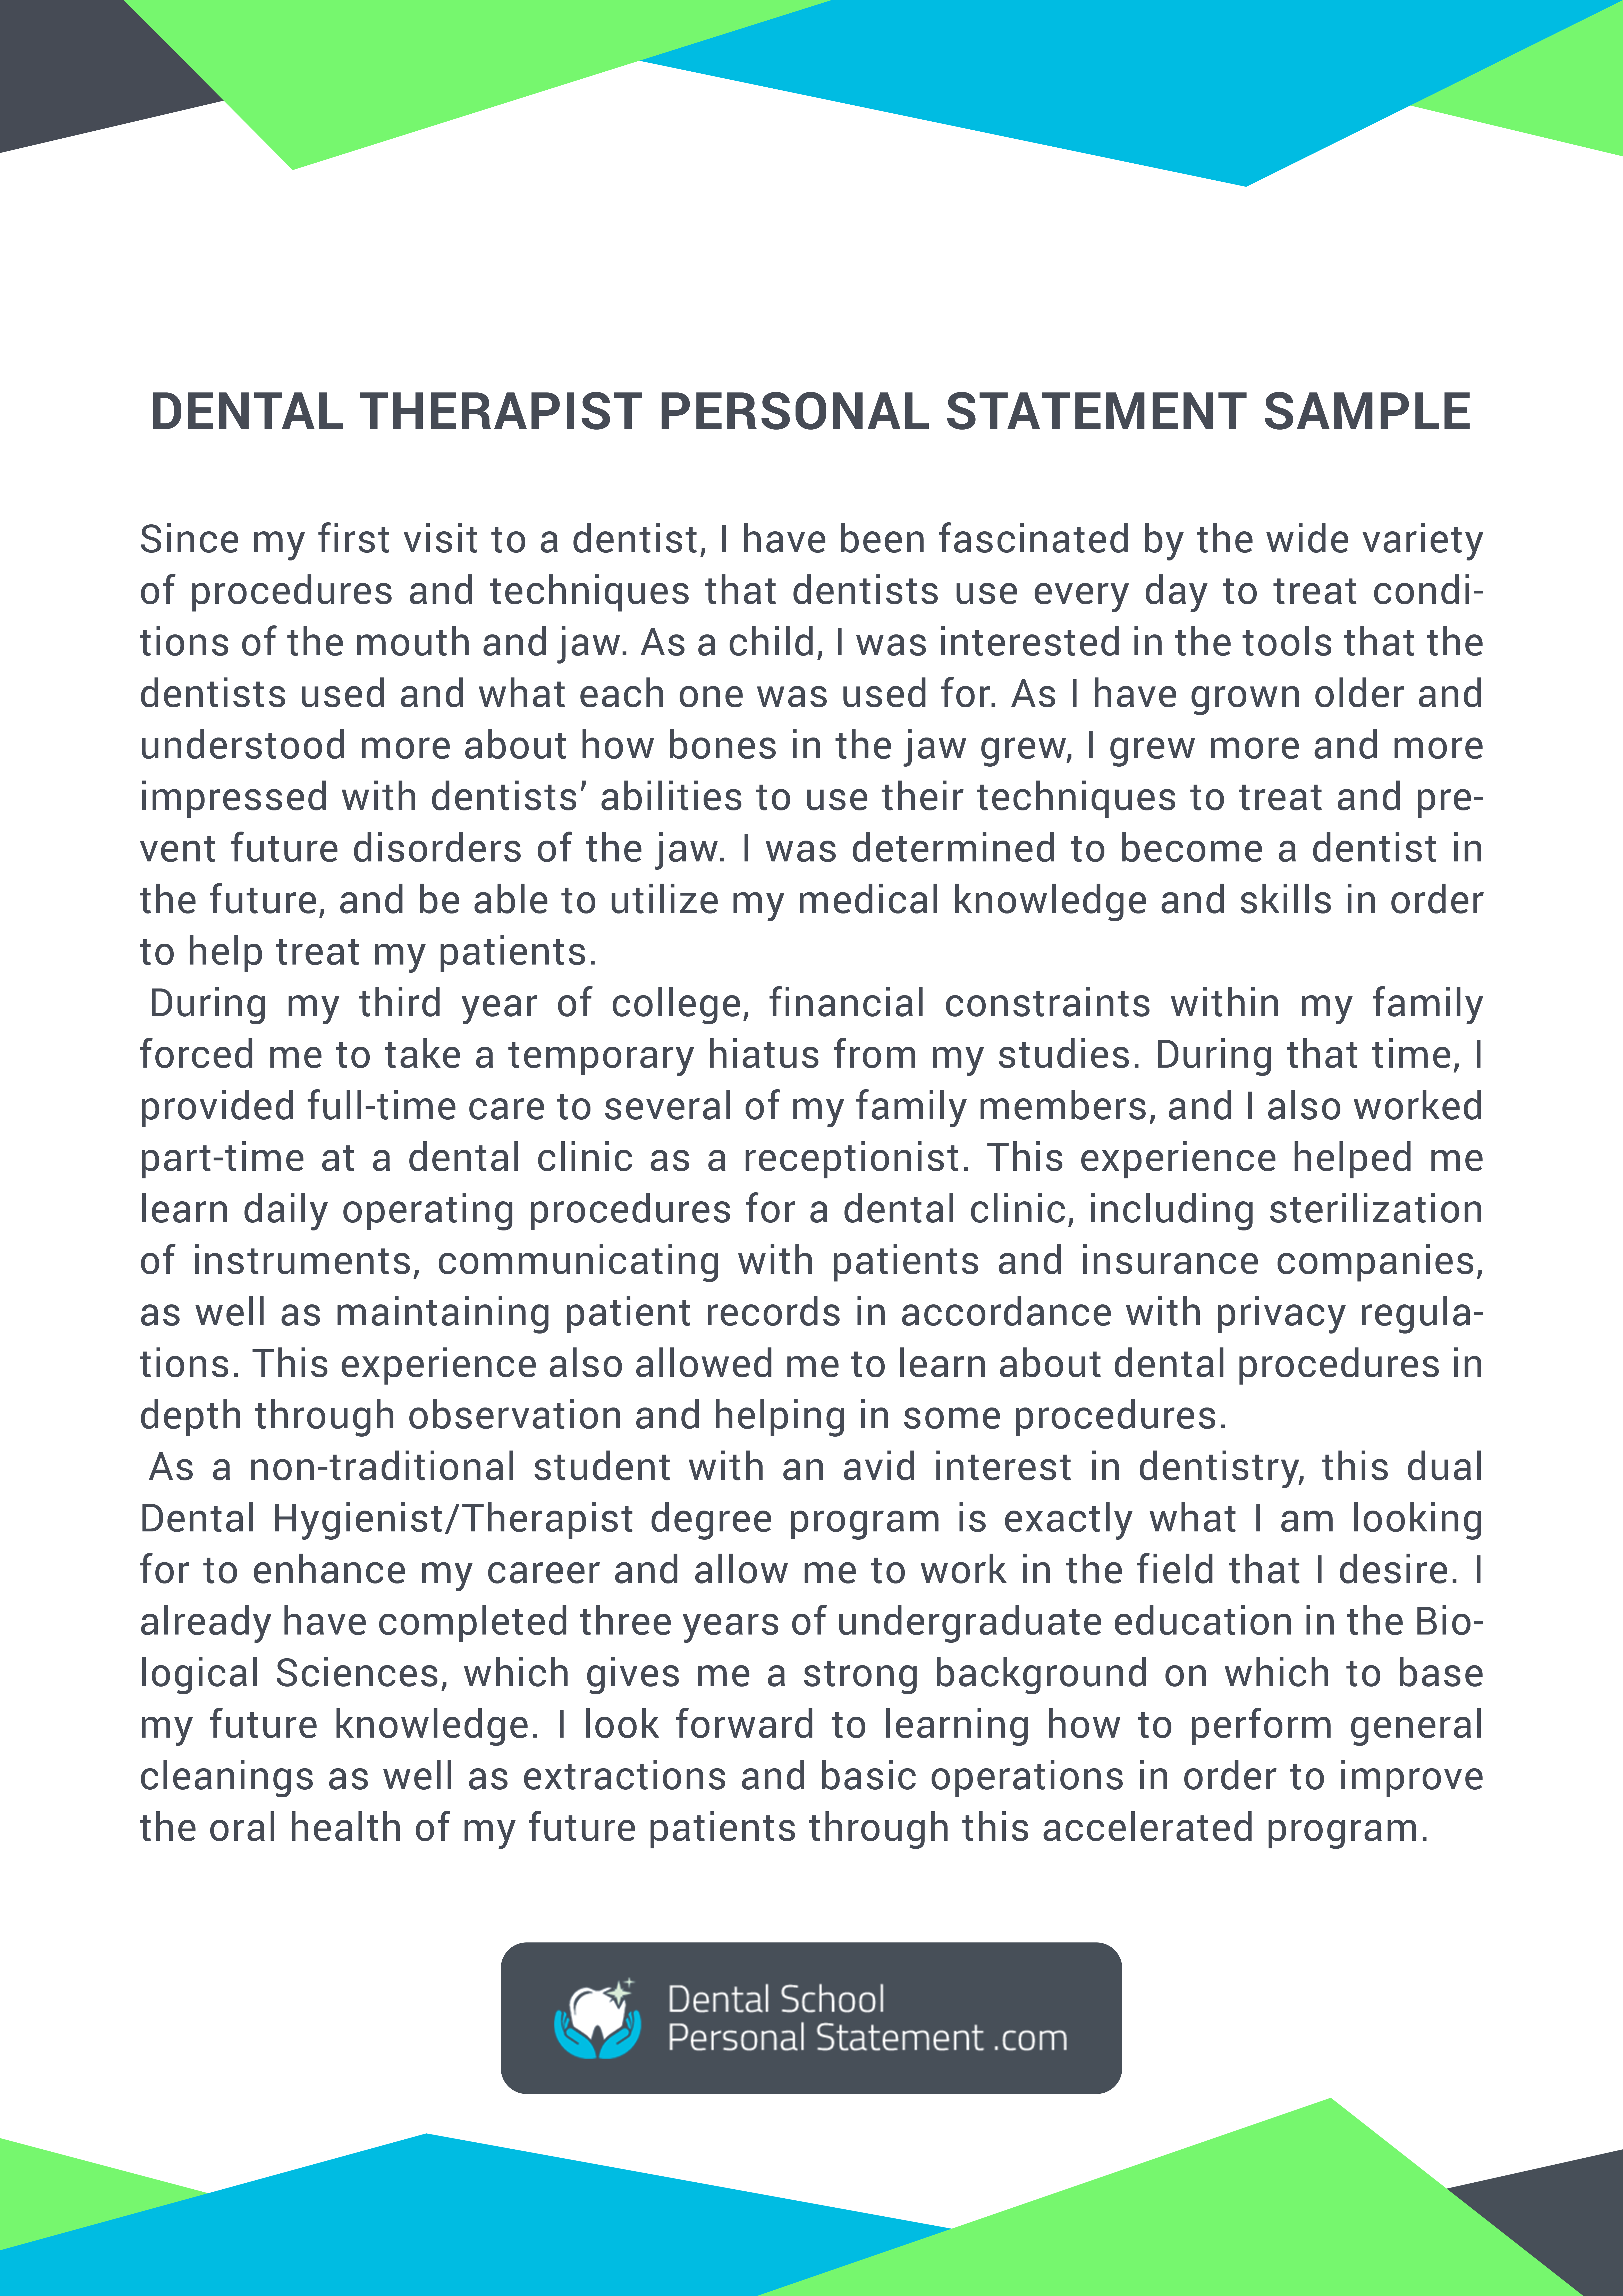 Dental personal statement examples.